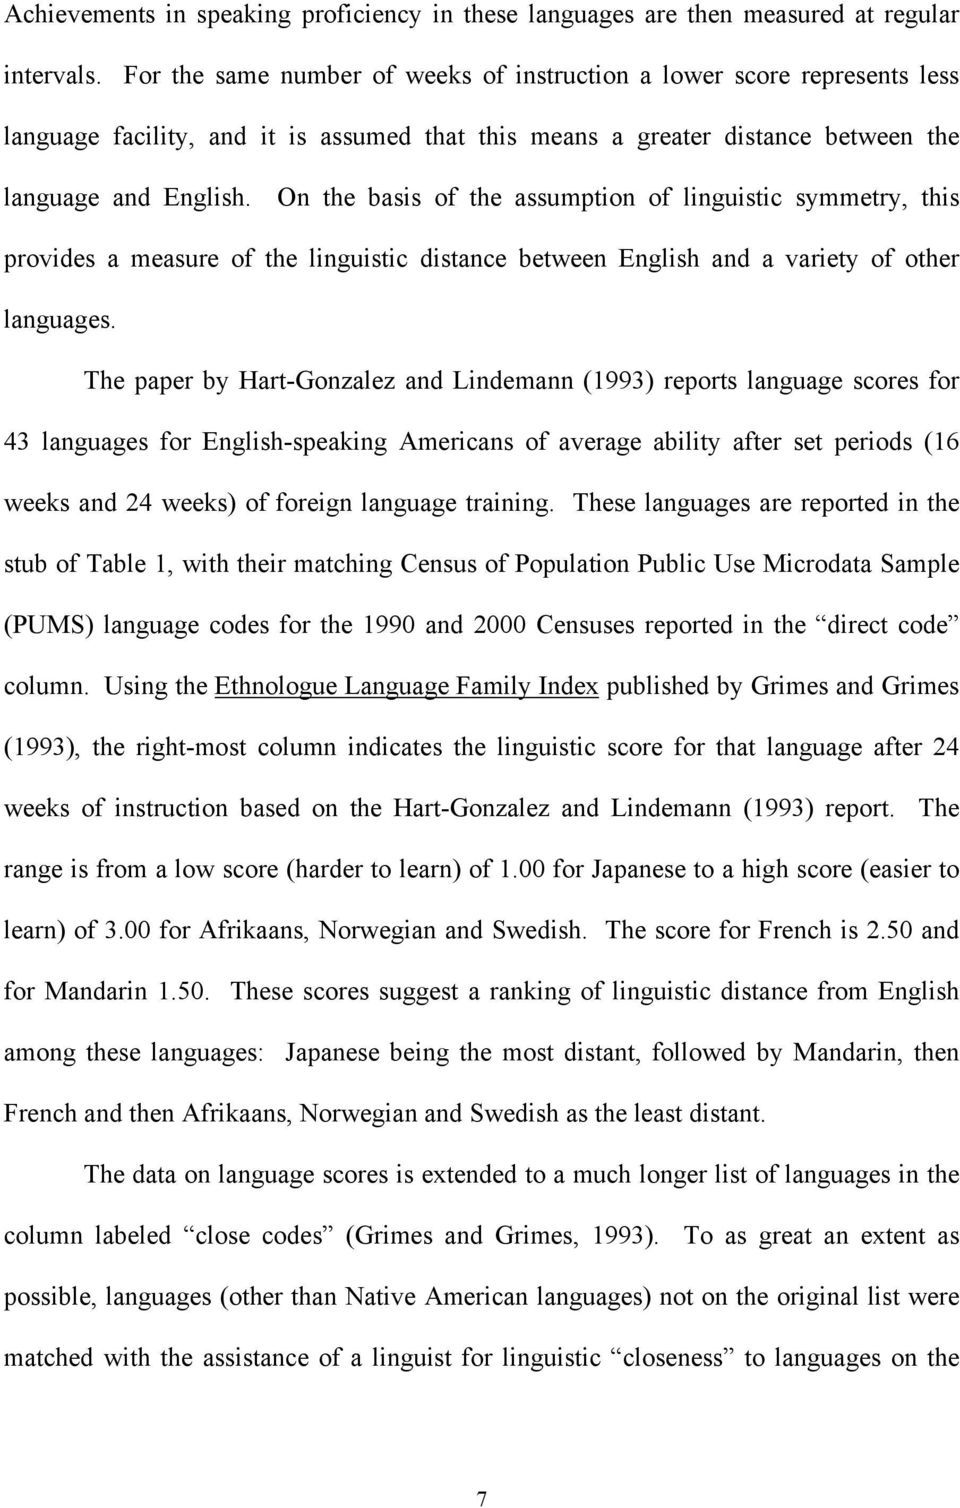 On the basis of the assumption of linguistic symmetry, this provides a measure of the linguistic distance between English and a variety of other languages.